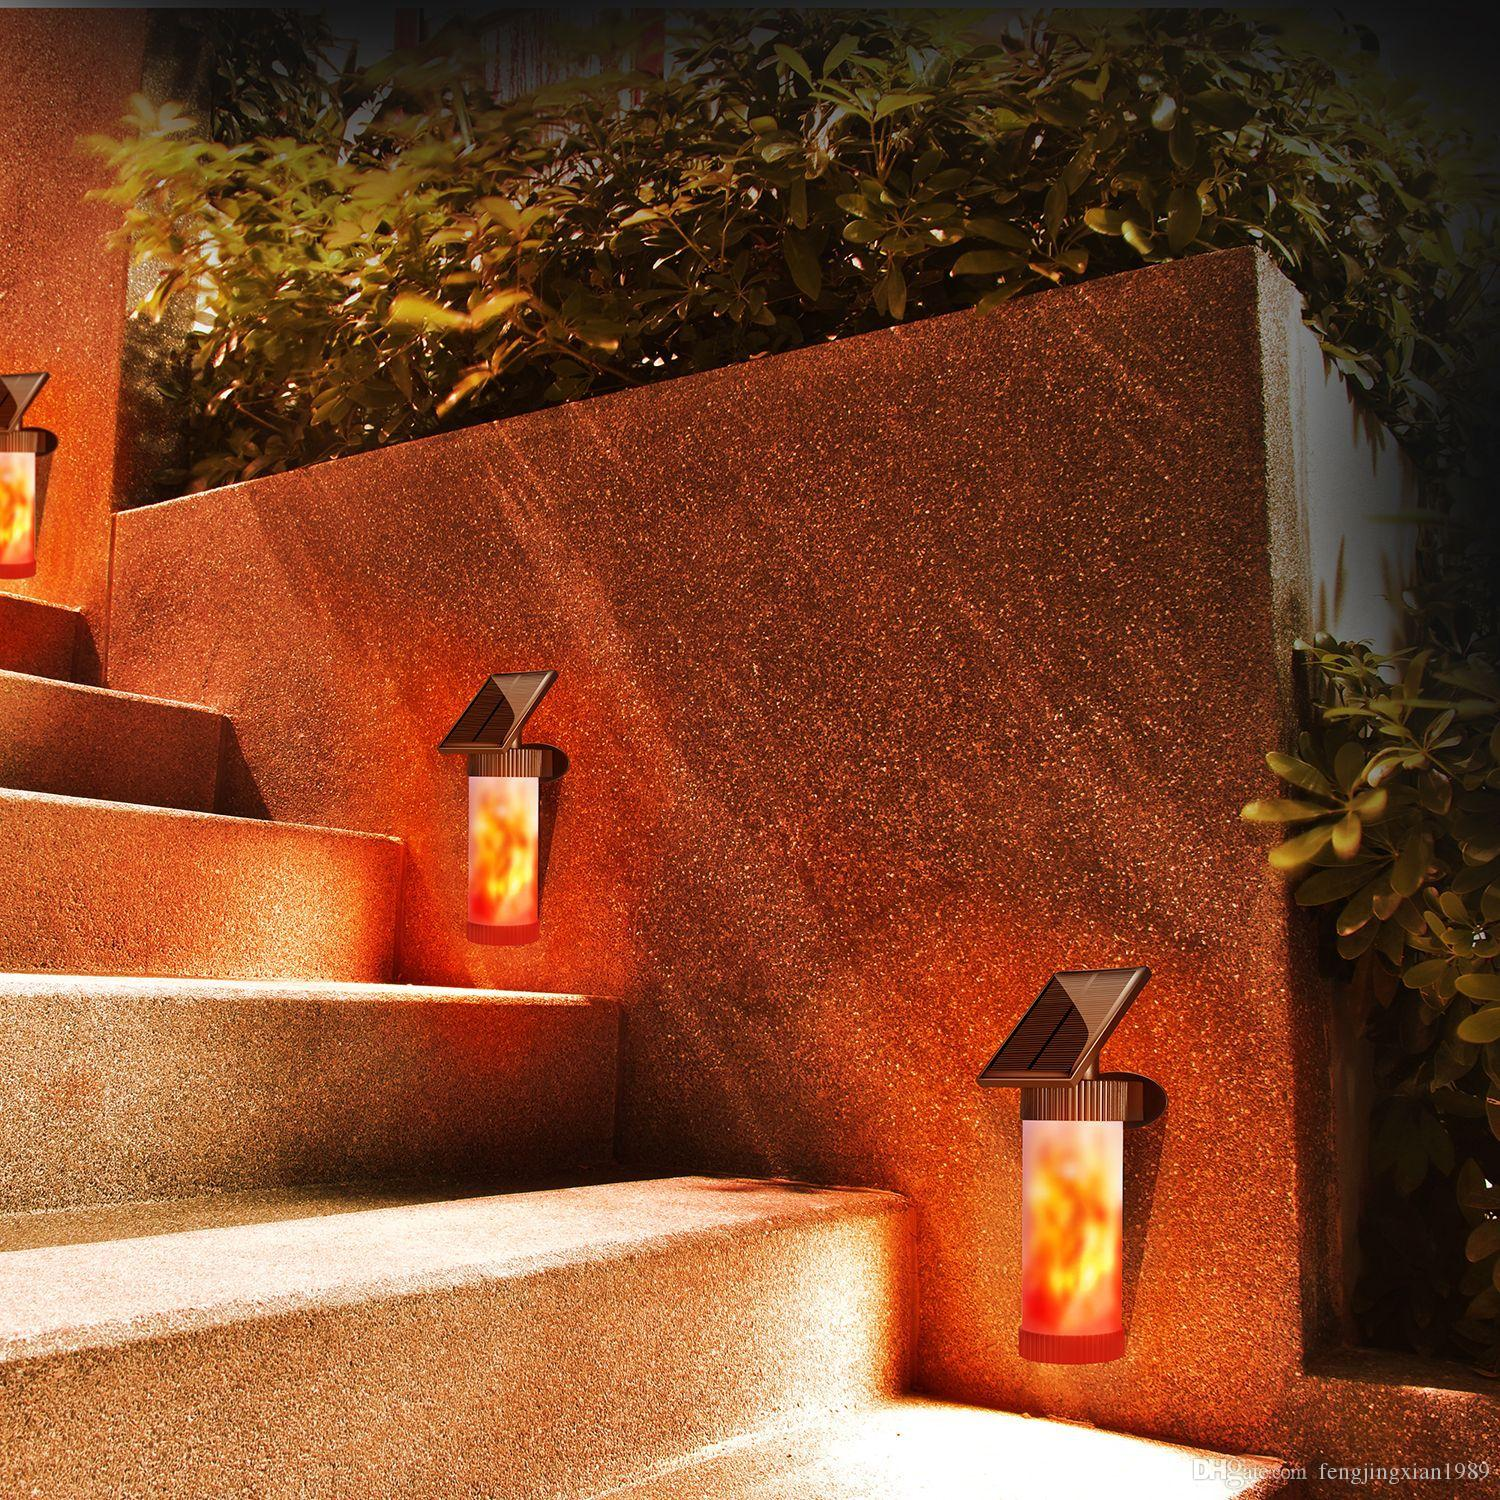 Solar Lamp Flickering Flames Torch Lights Solar Wall Lights IP65 Waterproof Warm White Night Light 102 LEDs Outdoor Decor Lamp